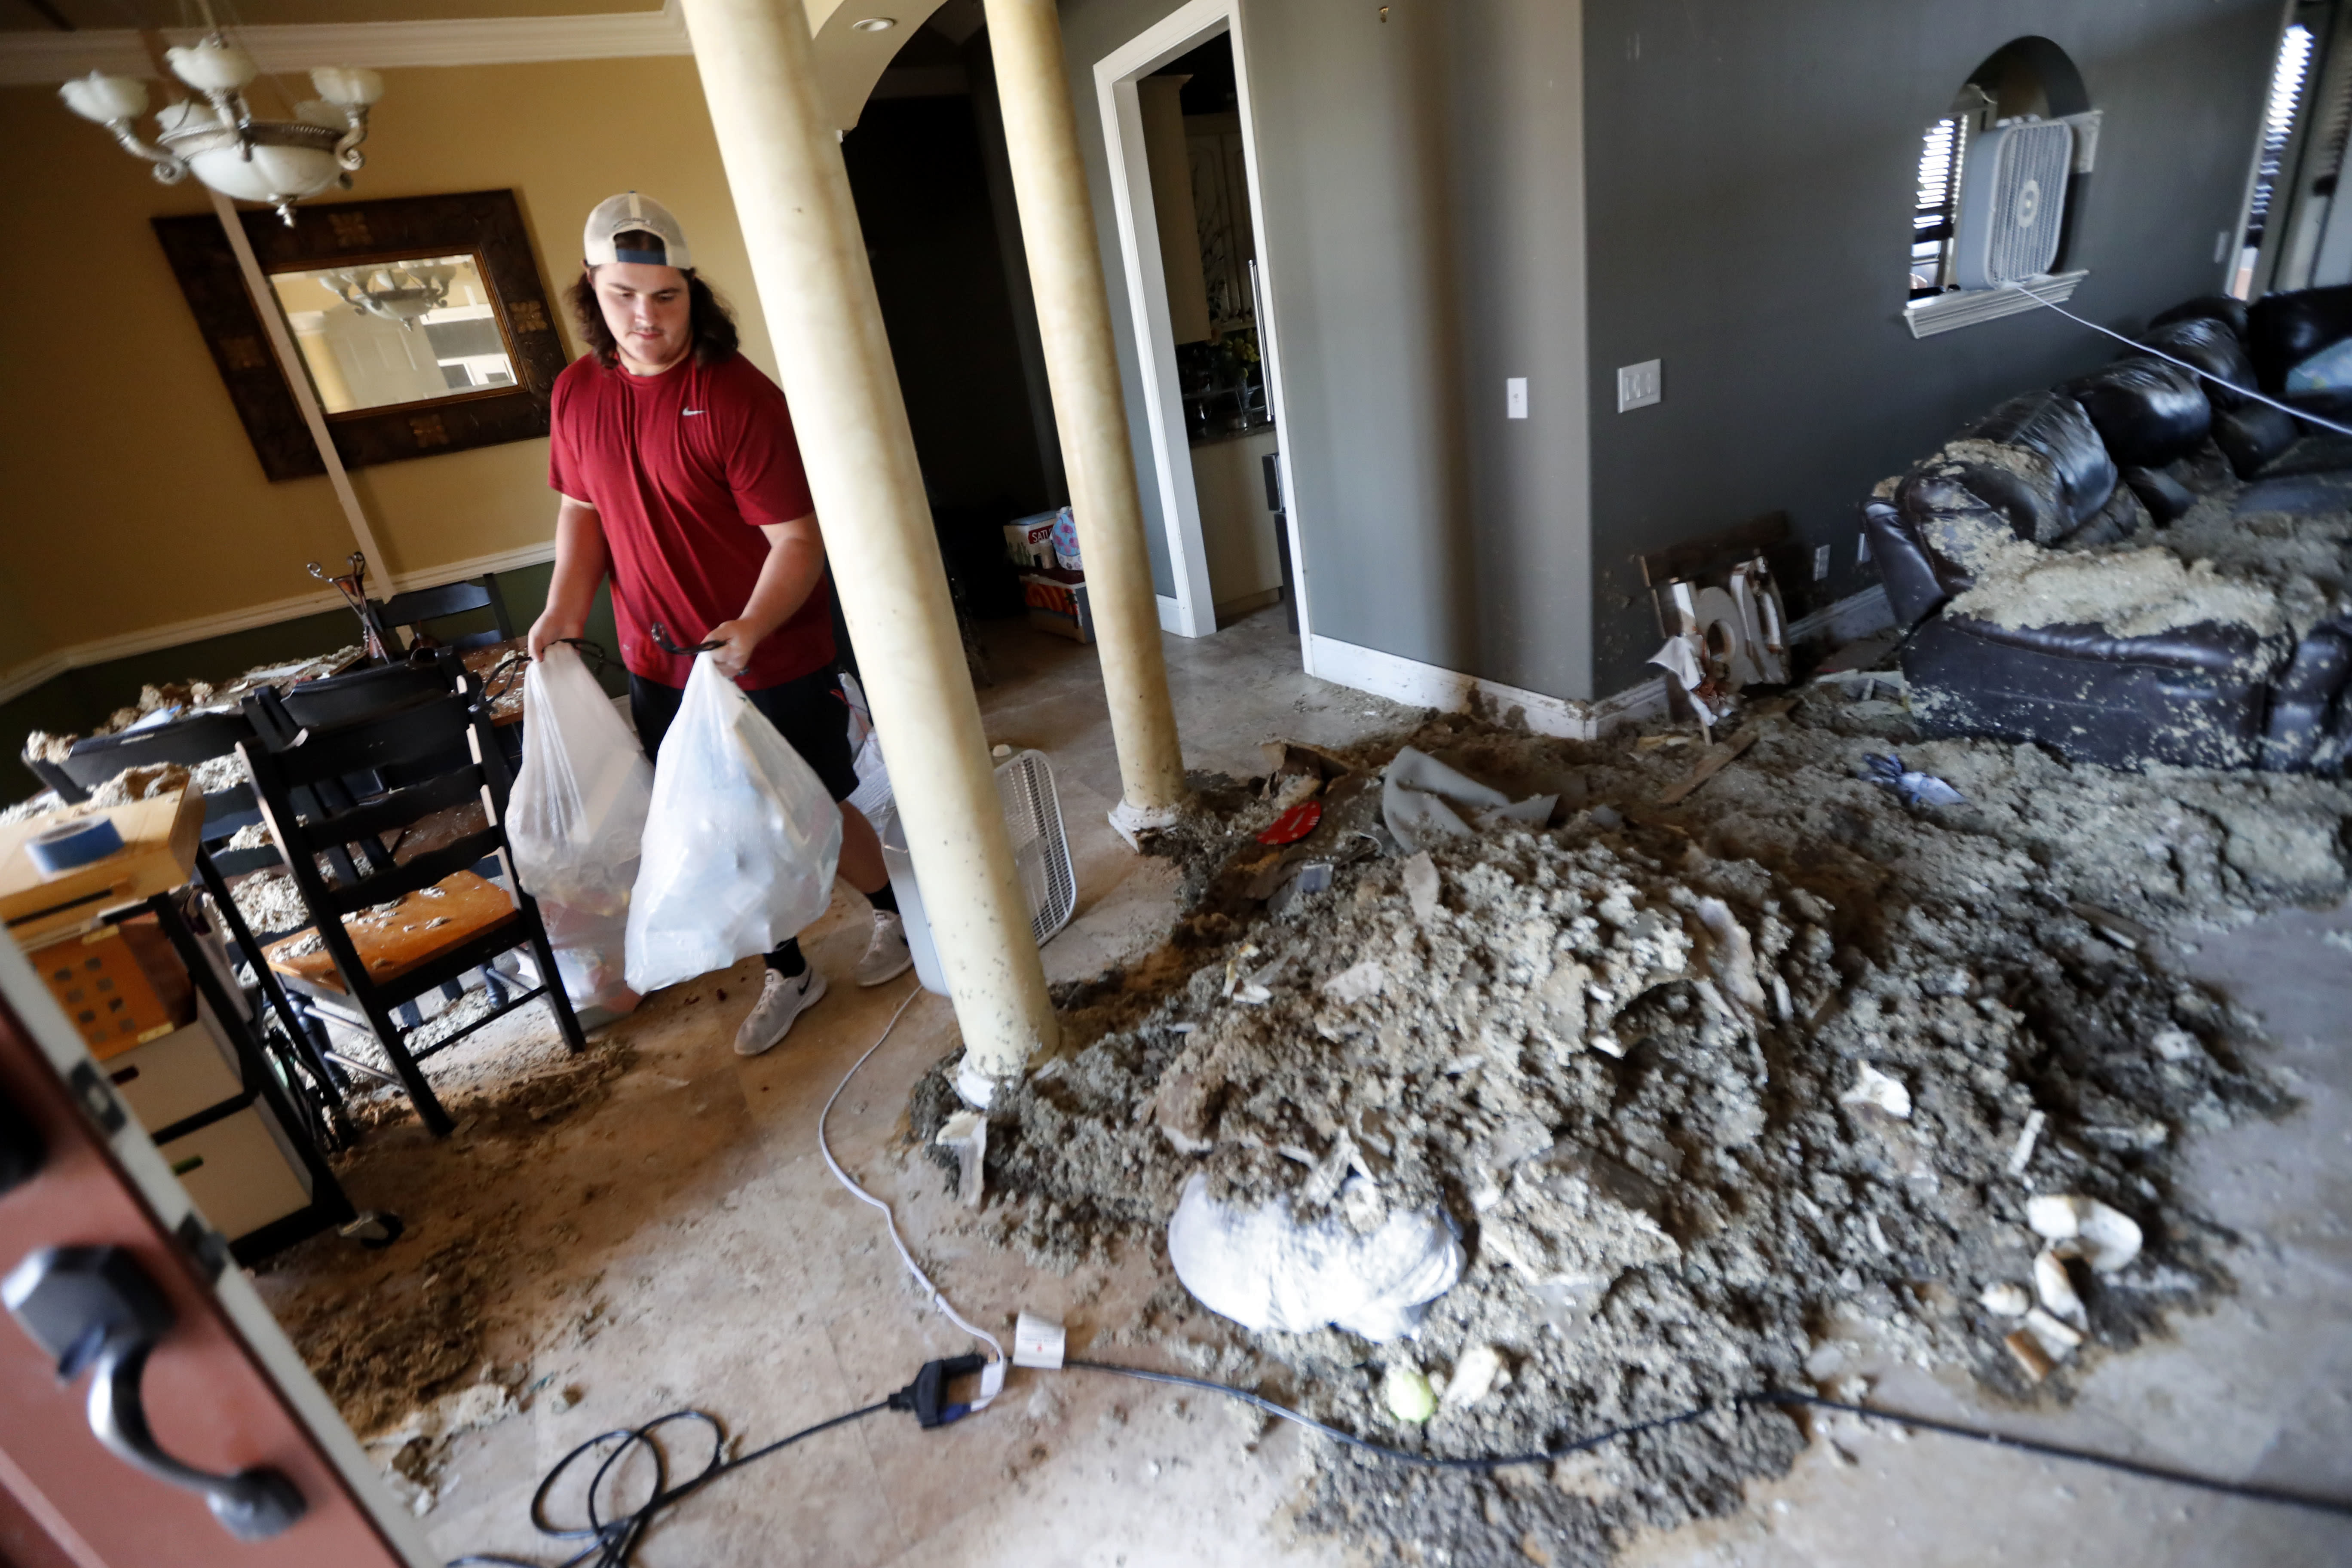 Castor Gay, who plays center for the Mosley High football team, cleans debris from his heavily damaged home, in the aftermath of Hurricane Michael in Lynn Haven, Fla., Friday, Oct. 19, 2018. (AP Photo/Gerald Herbert)